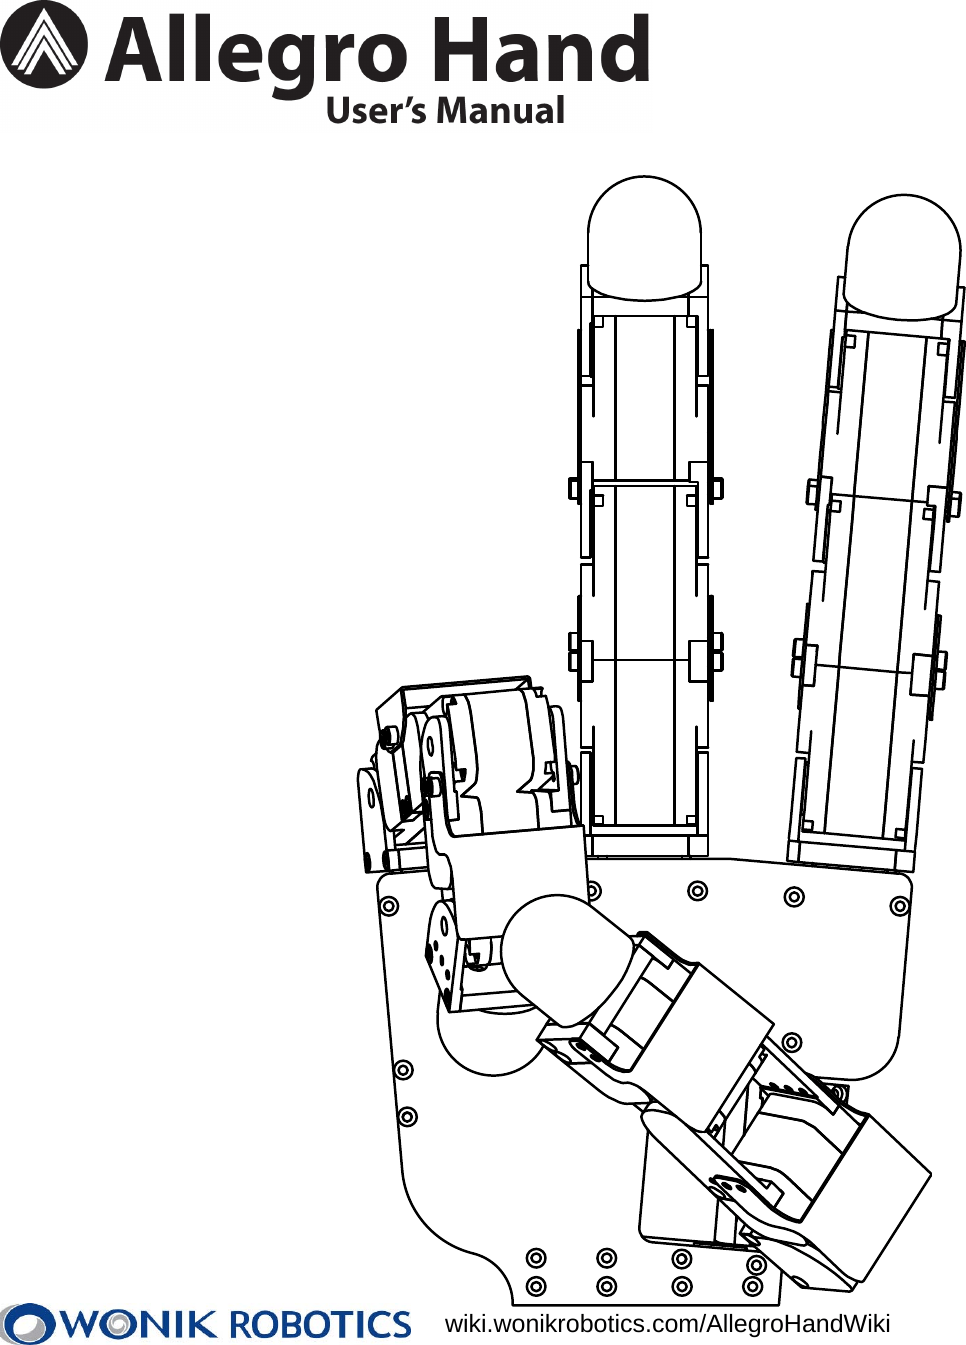 Allegro Hand Users Manual